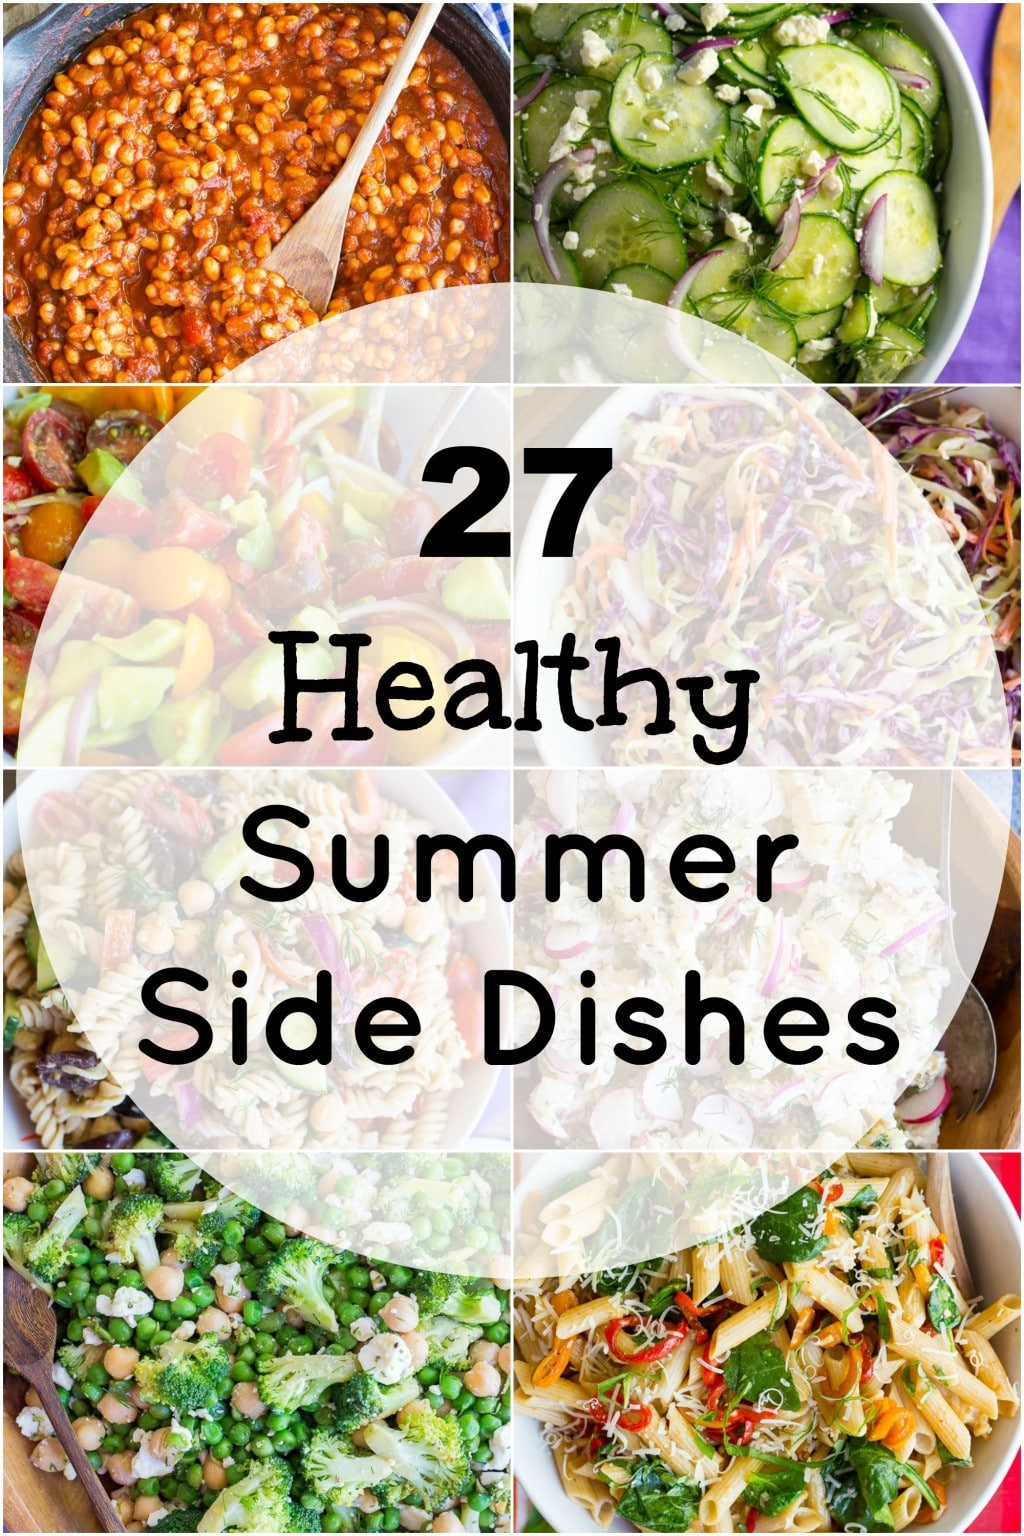 27 Healthy Summer Side Dishes She Likes Food